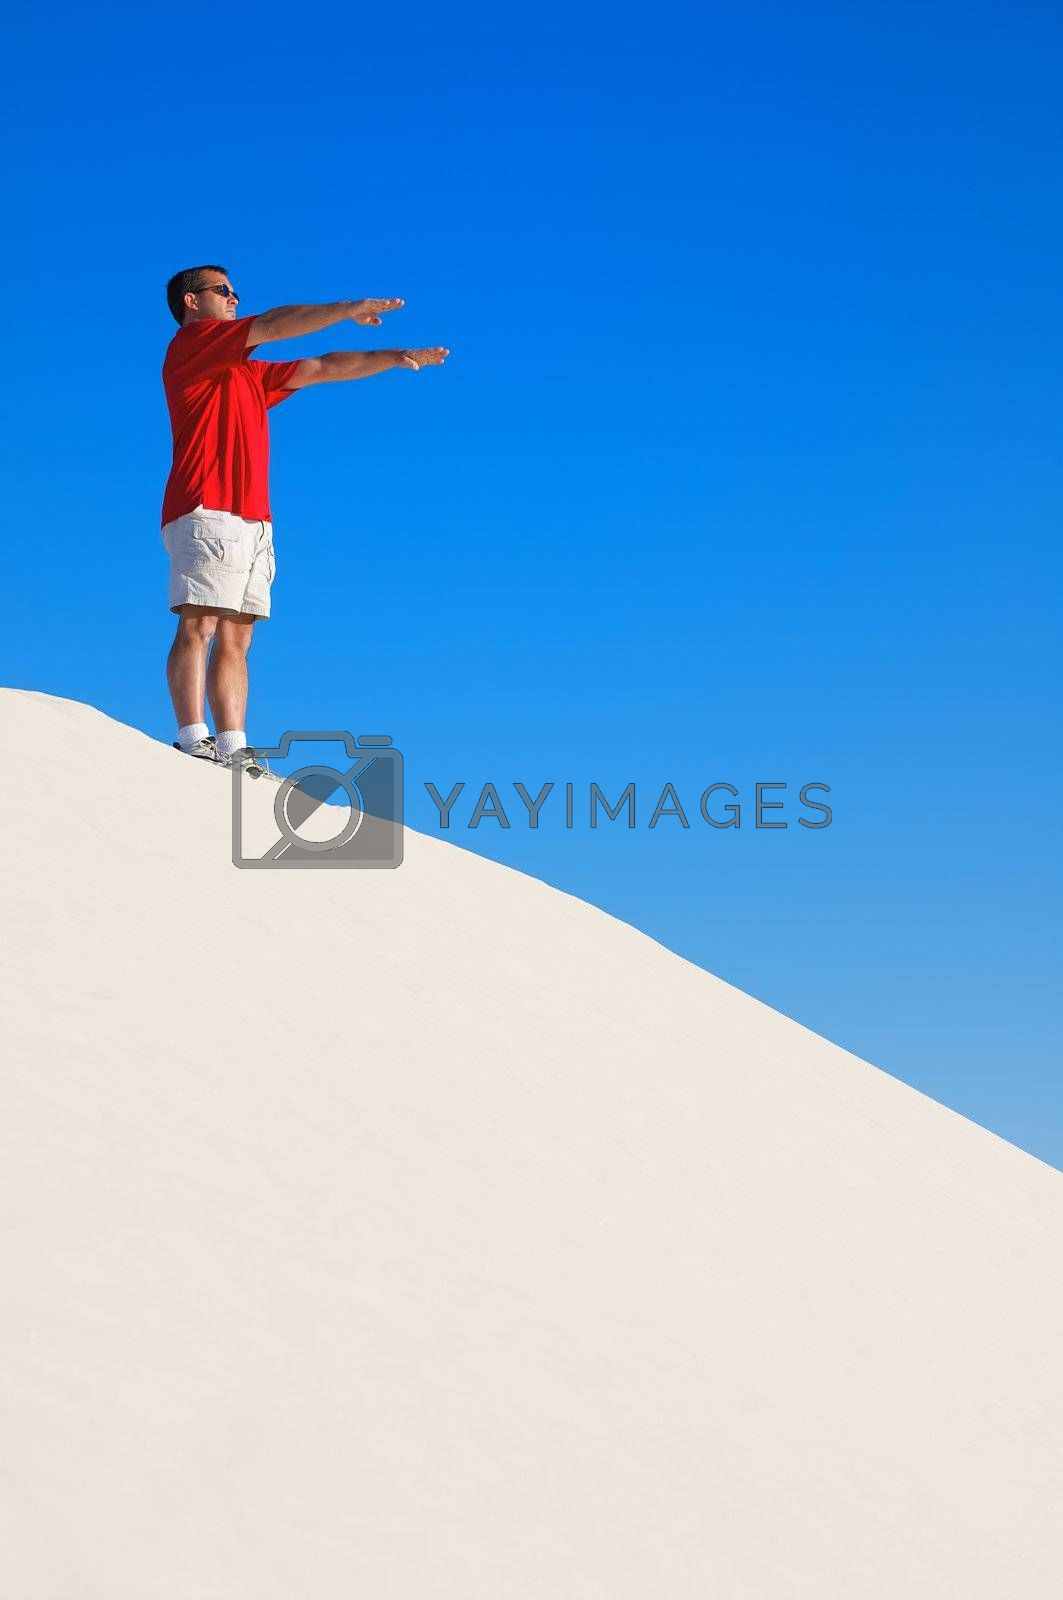 Man in a red shirt with his arms raised in a yoga pose looking off into the distance on top of a white sand dune with a blue sky